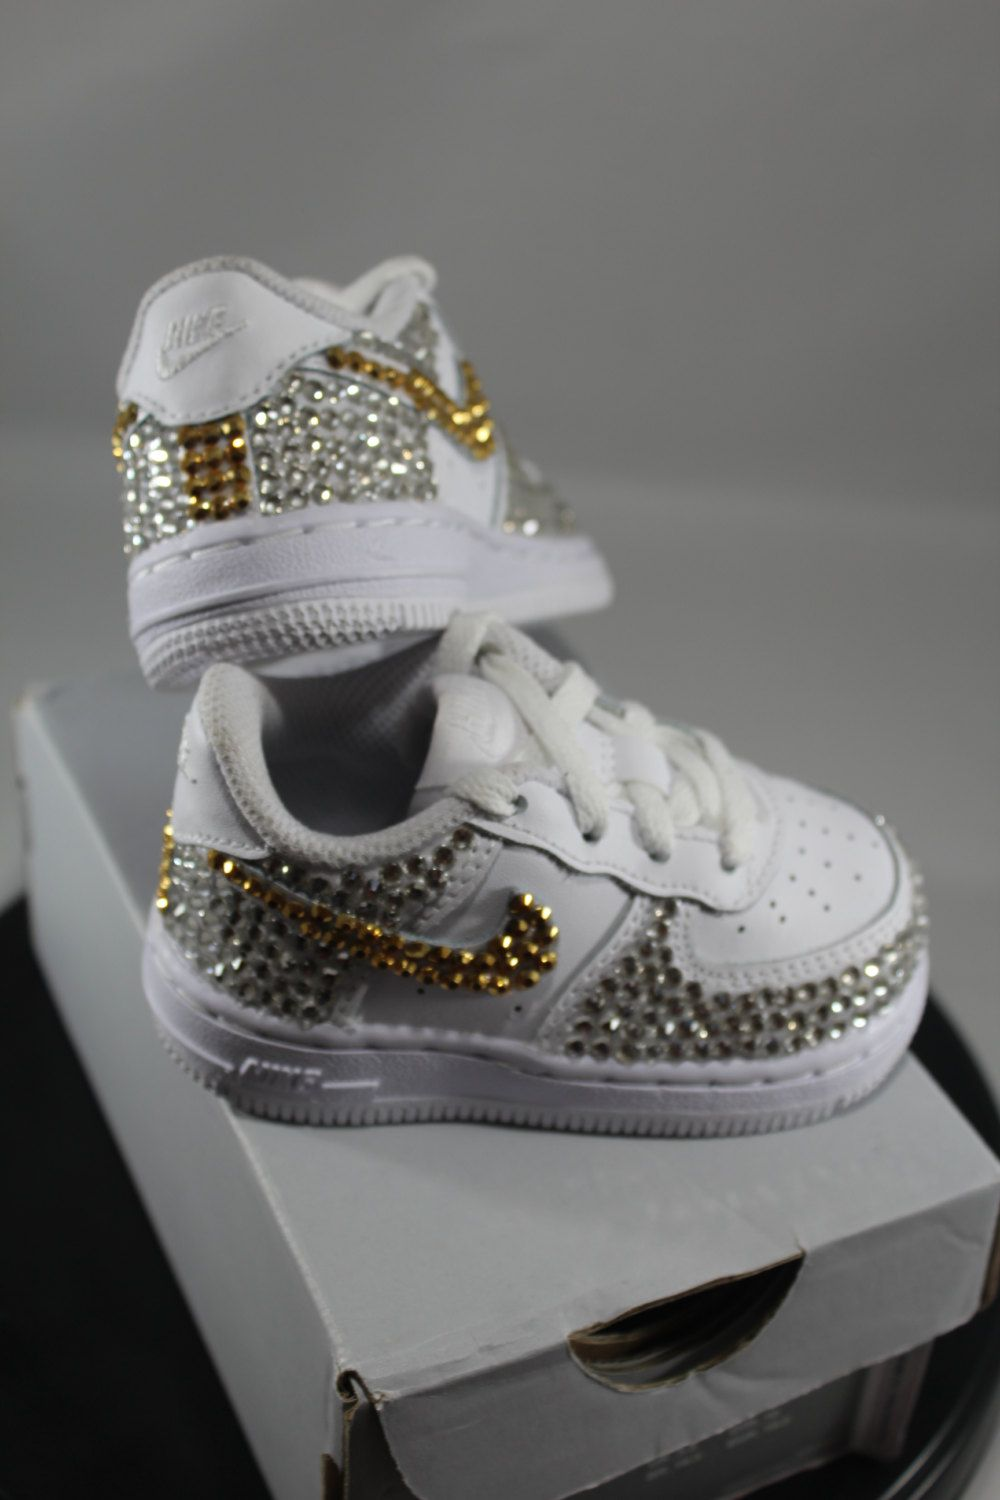 Custom Bling Air Force Ones- Bling Tennis Shoes- Bling   Pearls- Baby Bling  Nikes- AF1s- Custom Tennis Shoes- Bedazzled Nikes- Bling Shoes by ... da08fb7231